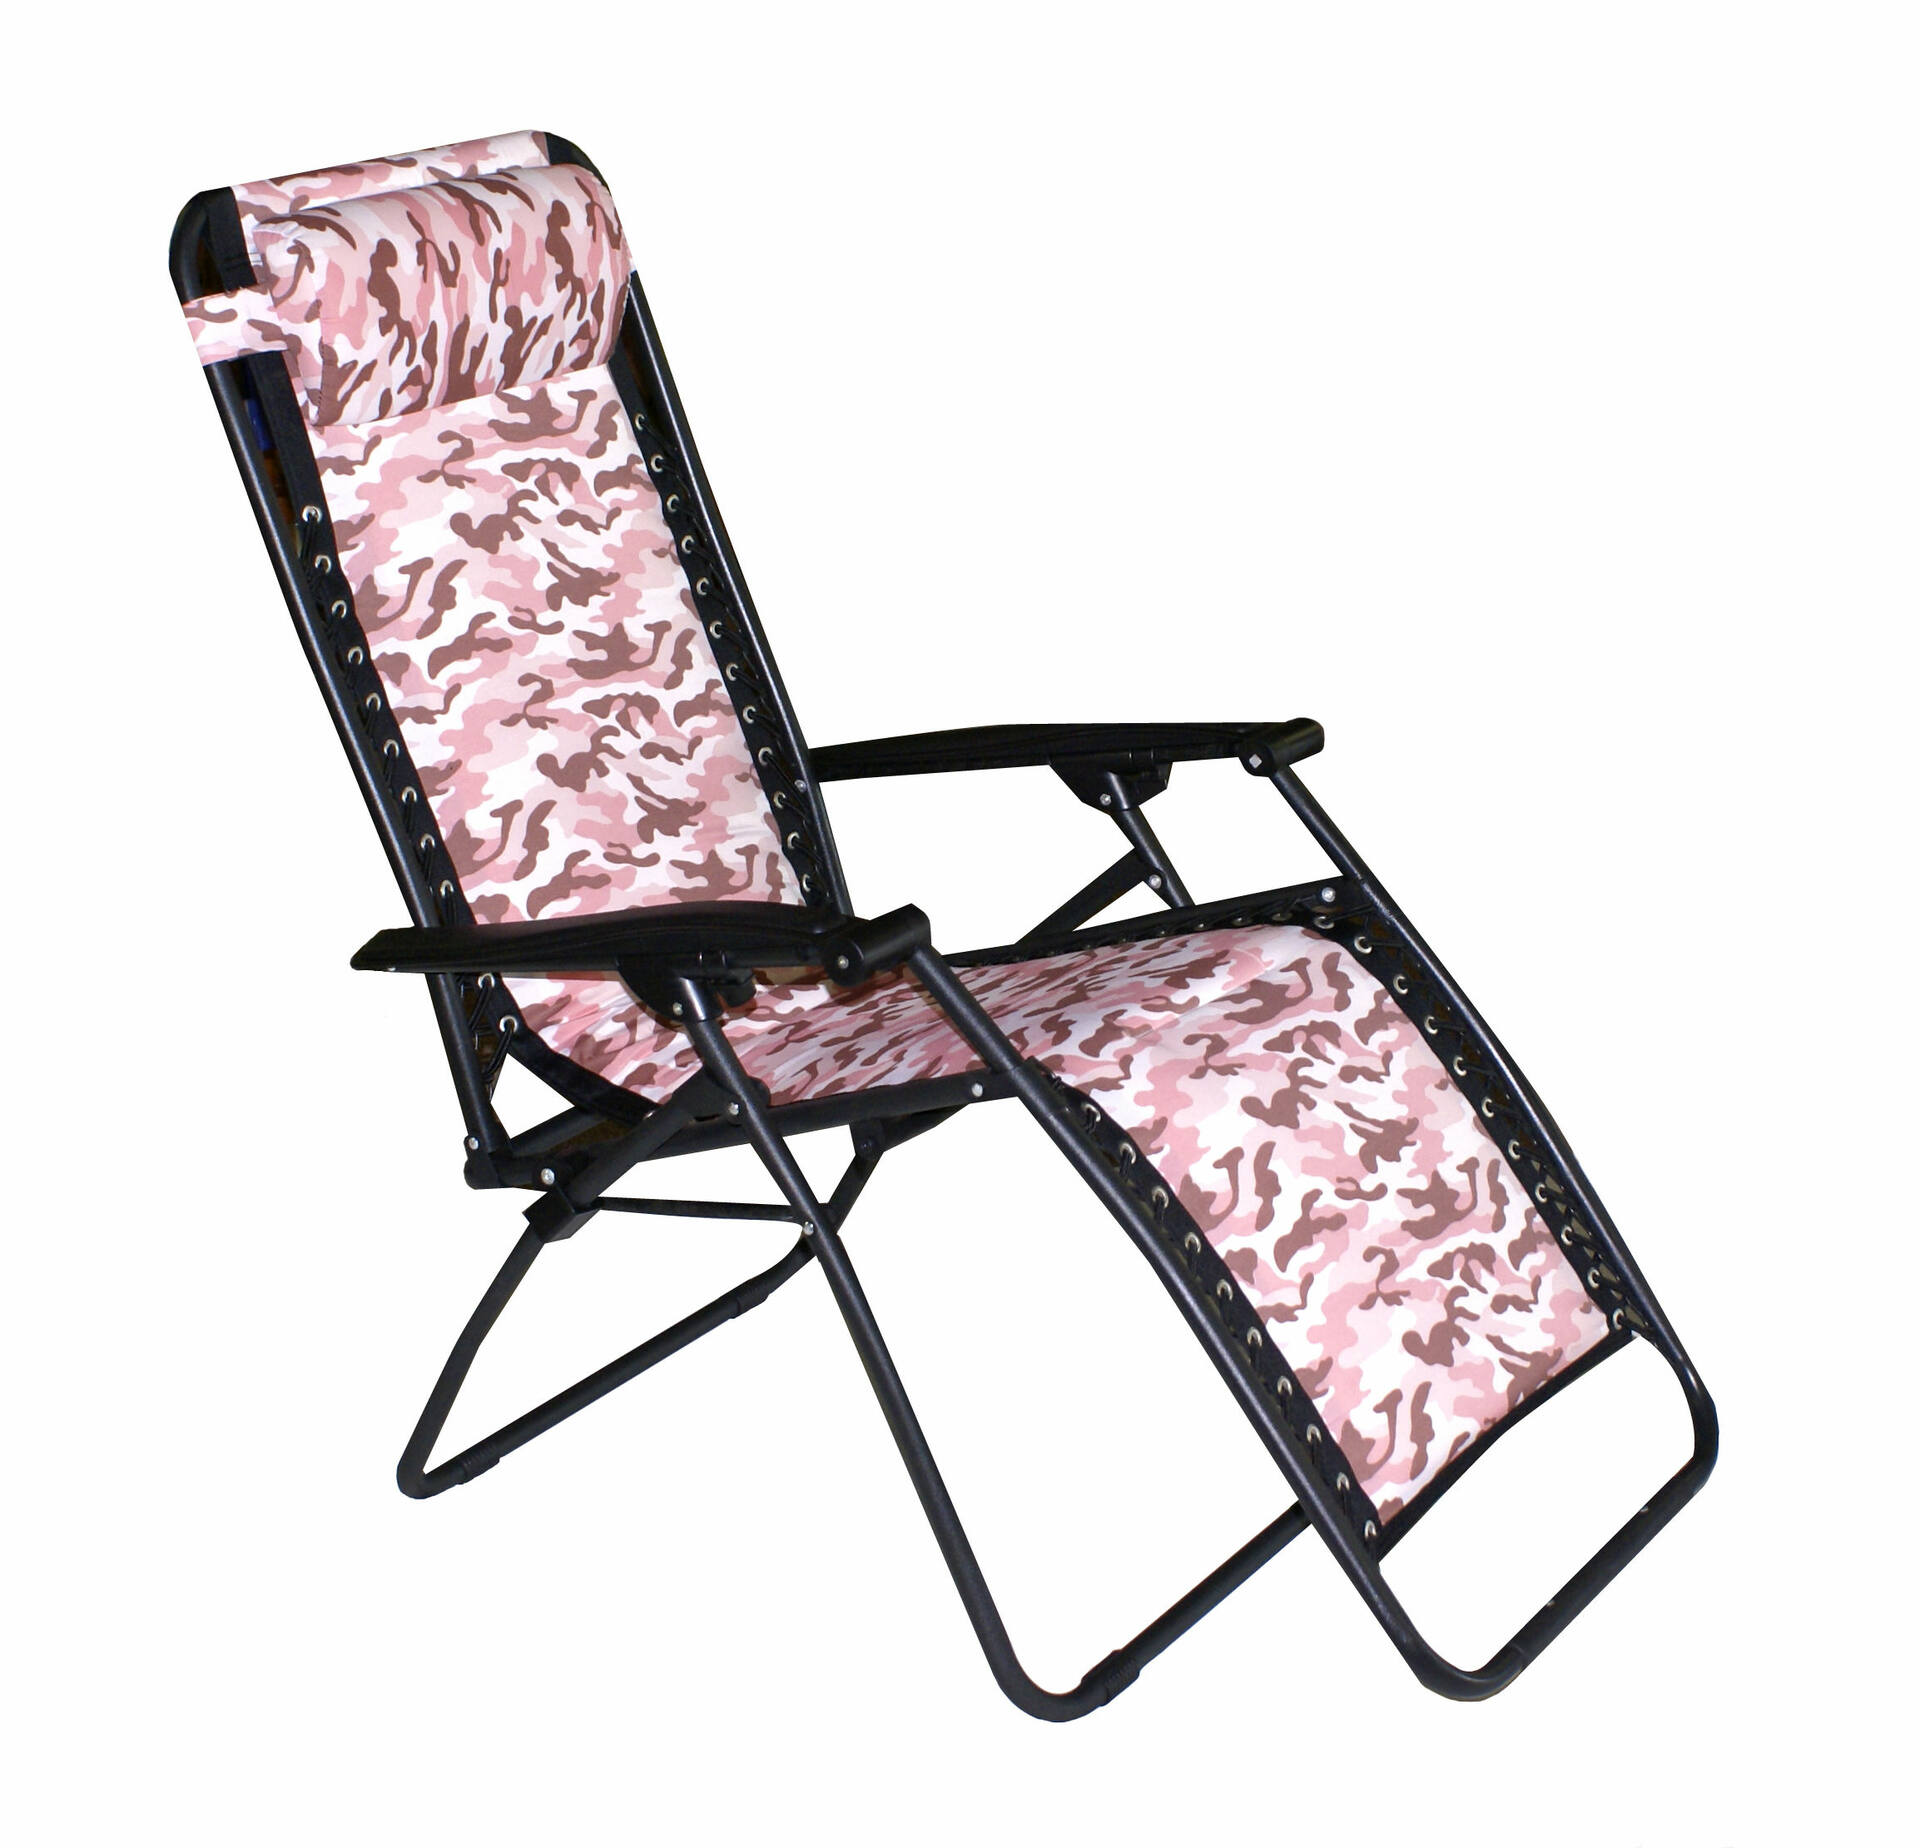 Camo zero gravity chair chairs seating for Camo chaise lounge